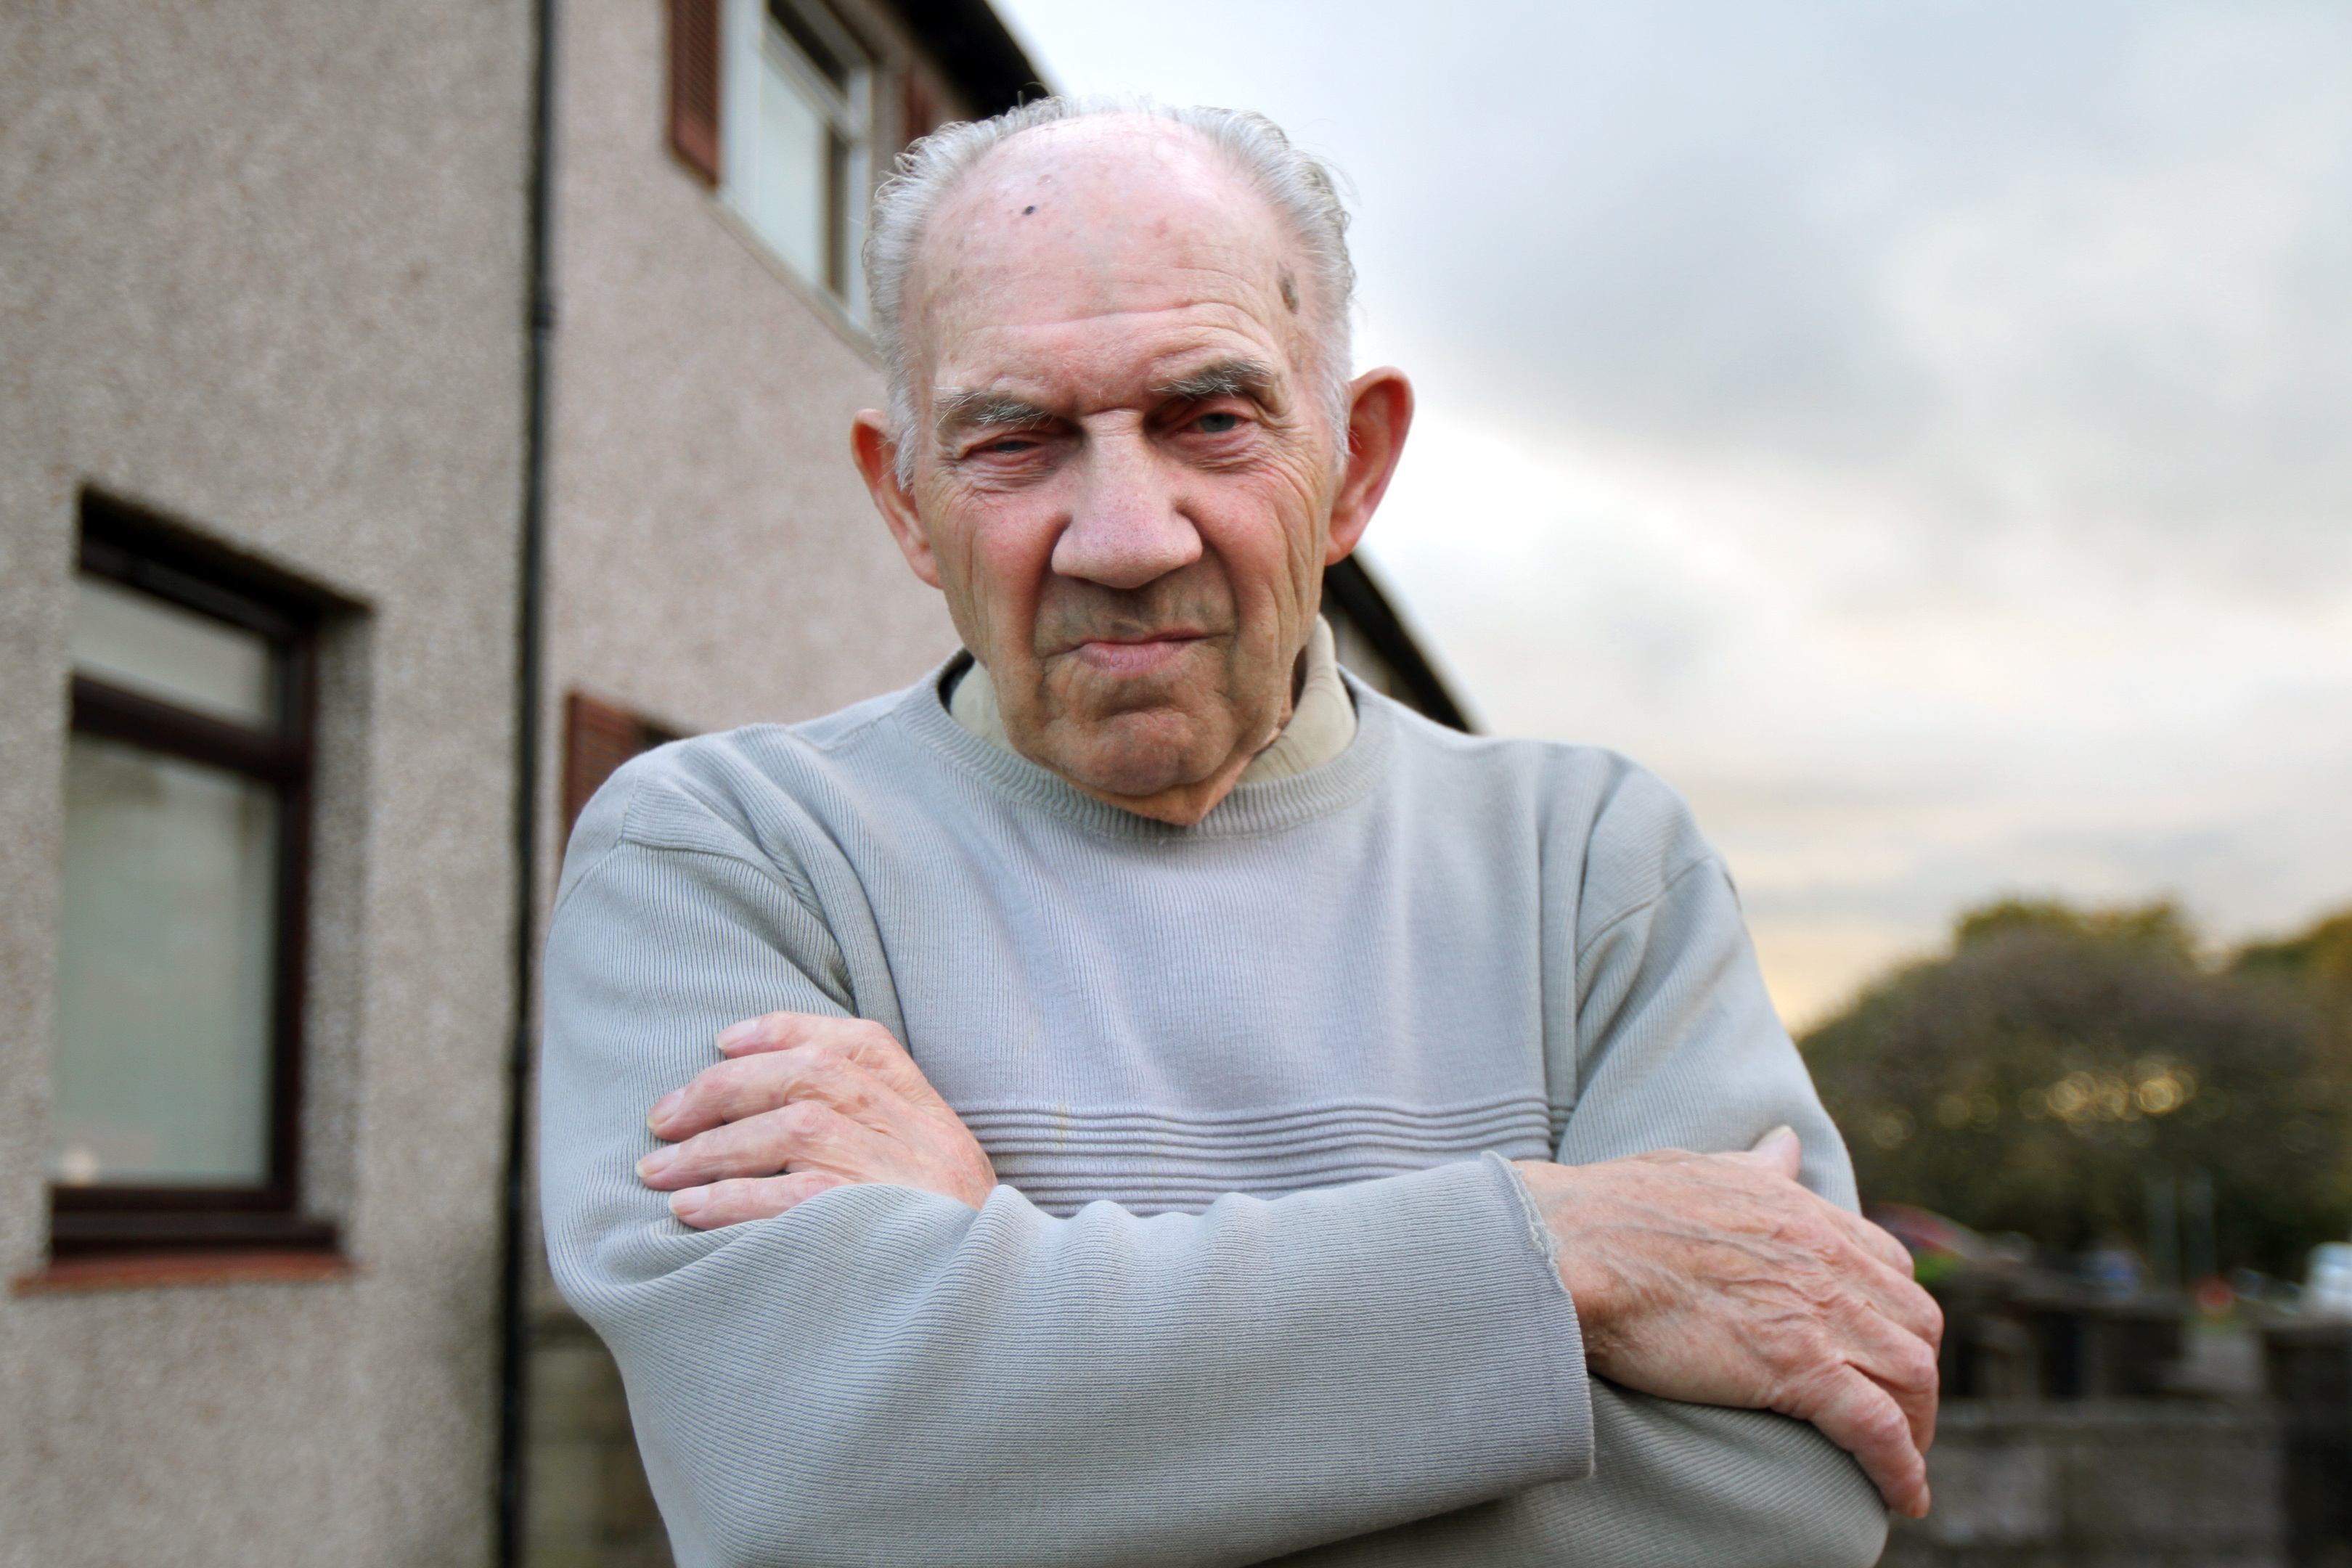 Dundee granddad Charles White, 84, issued a warning after turning away a group of bogus workmen